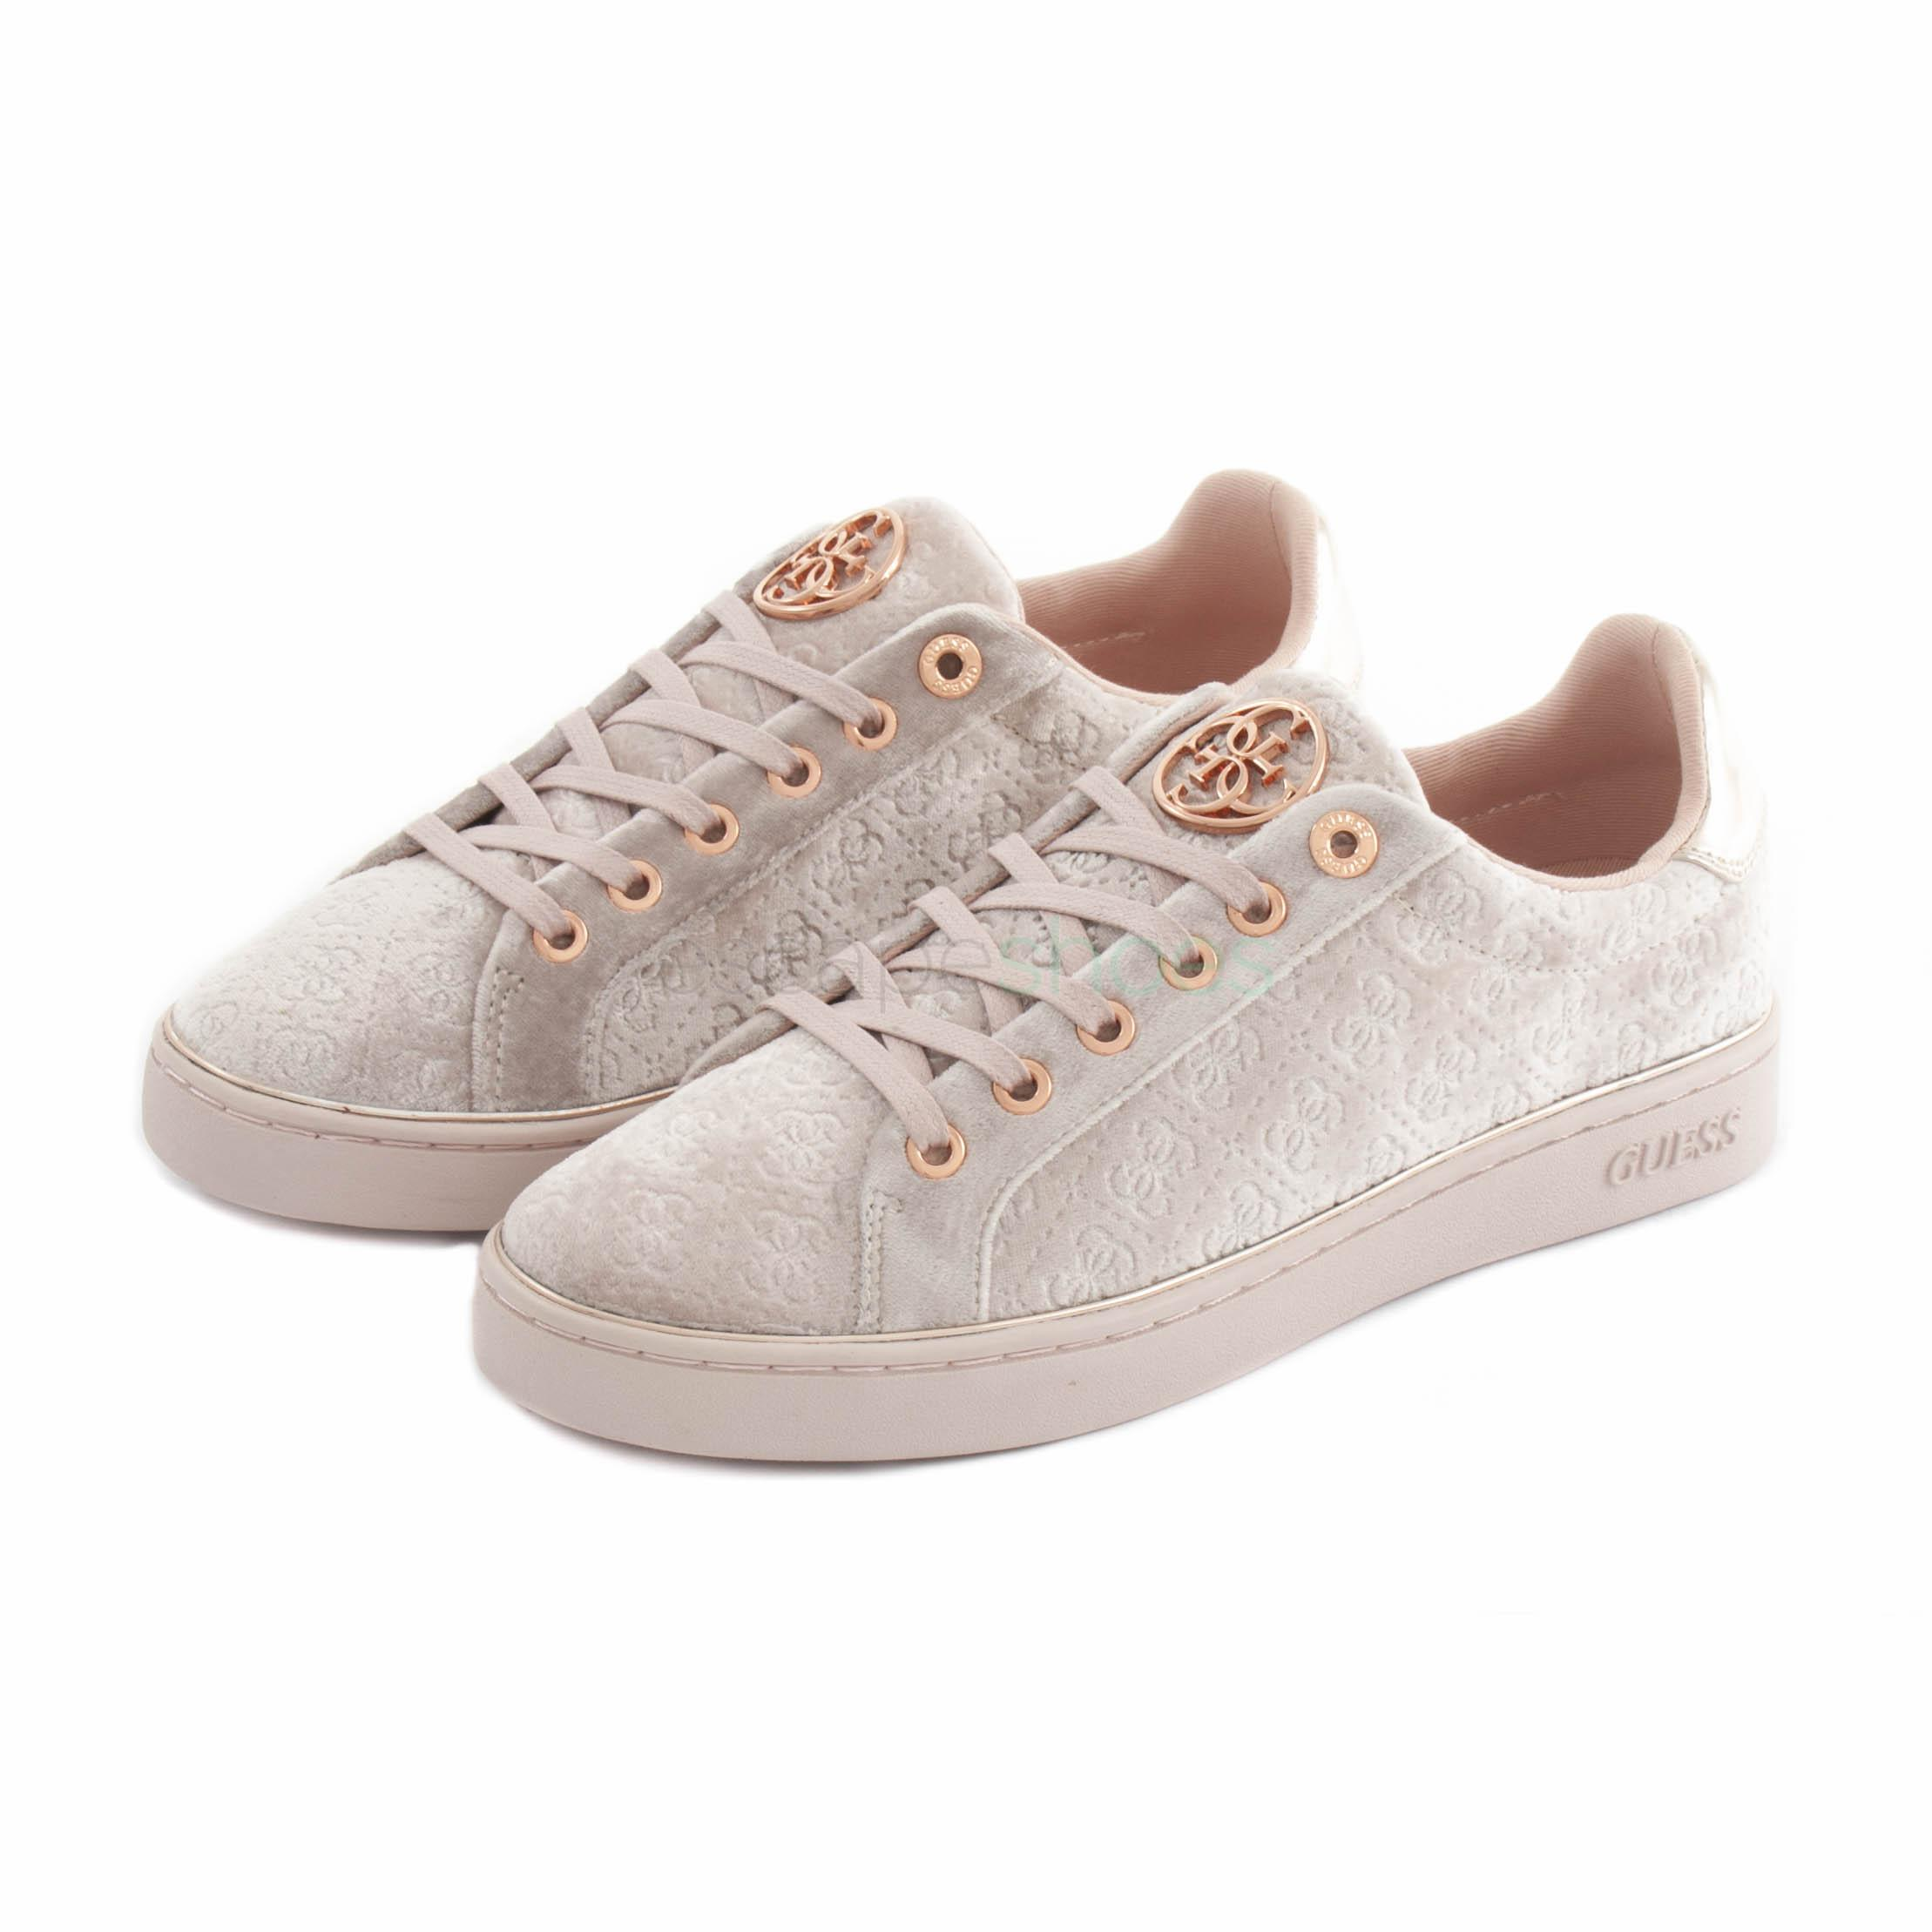 negozio online 24df0 db09f Sneakers GUESS Brayza Active Lady Pink